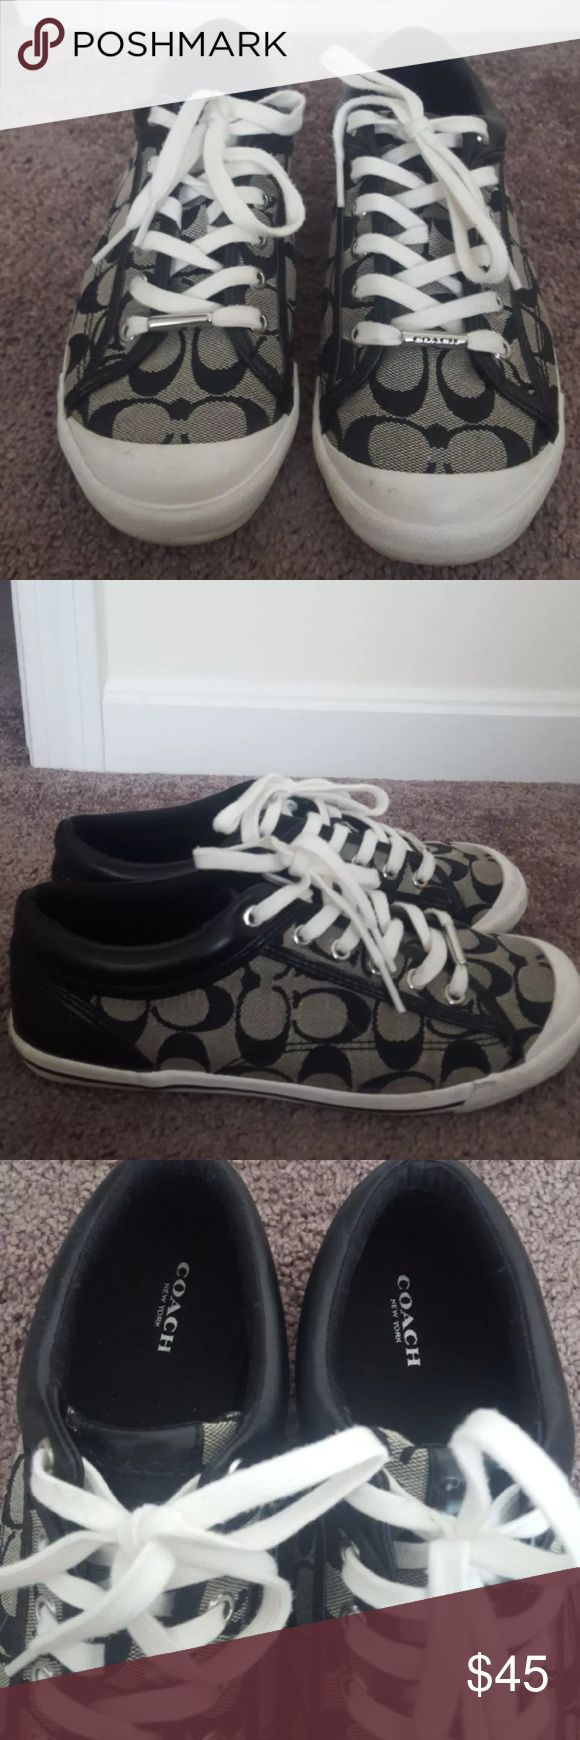 Black coach sneakers Size 9 black coach sneakers with leather on the heel. Worn once! Coach Shoes Sneakers